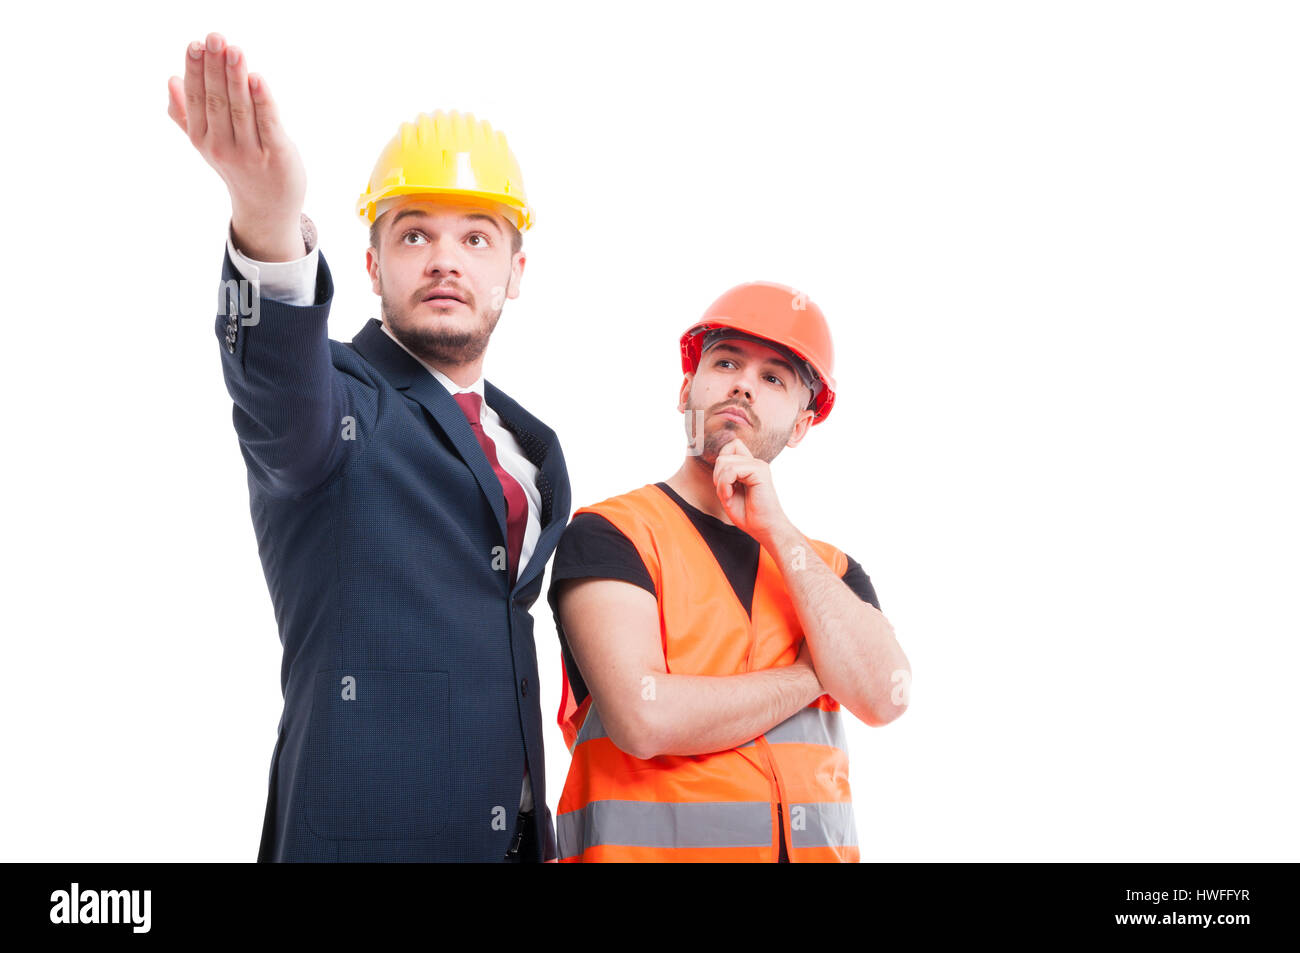 Bussinesman explaining and indicate something to young builder on white background - Stock Image